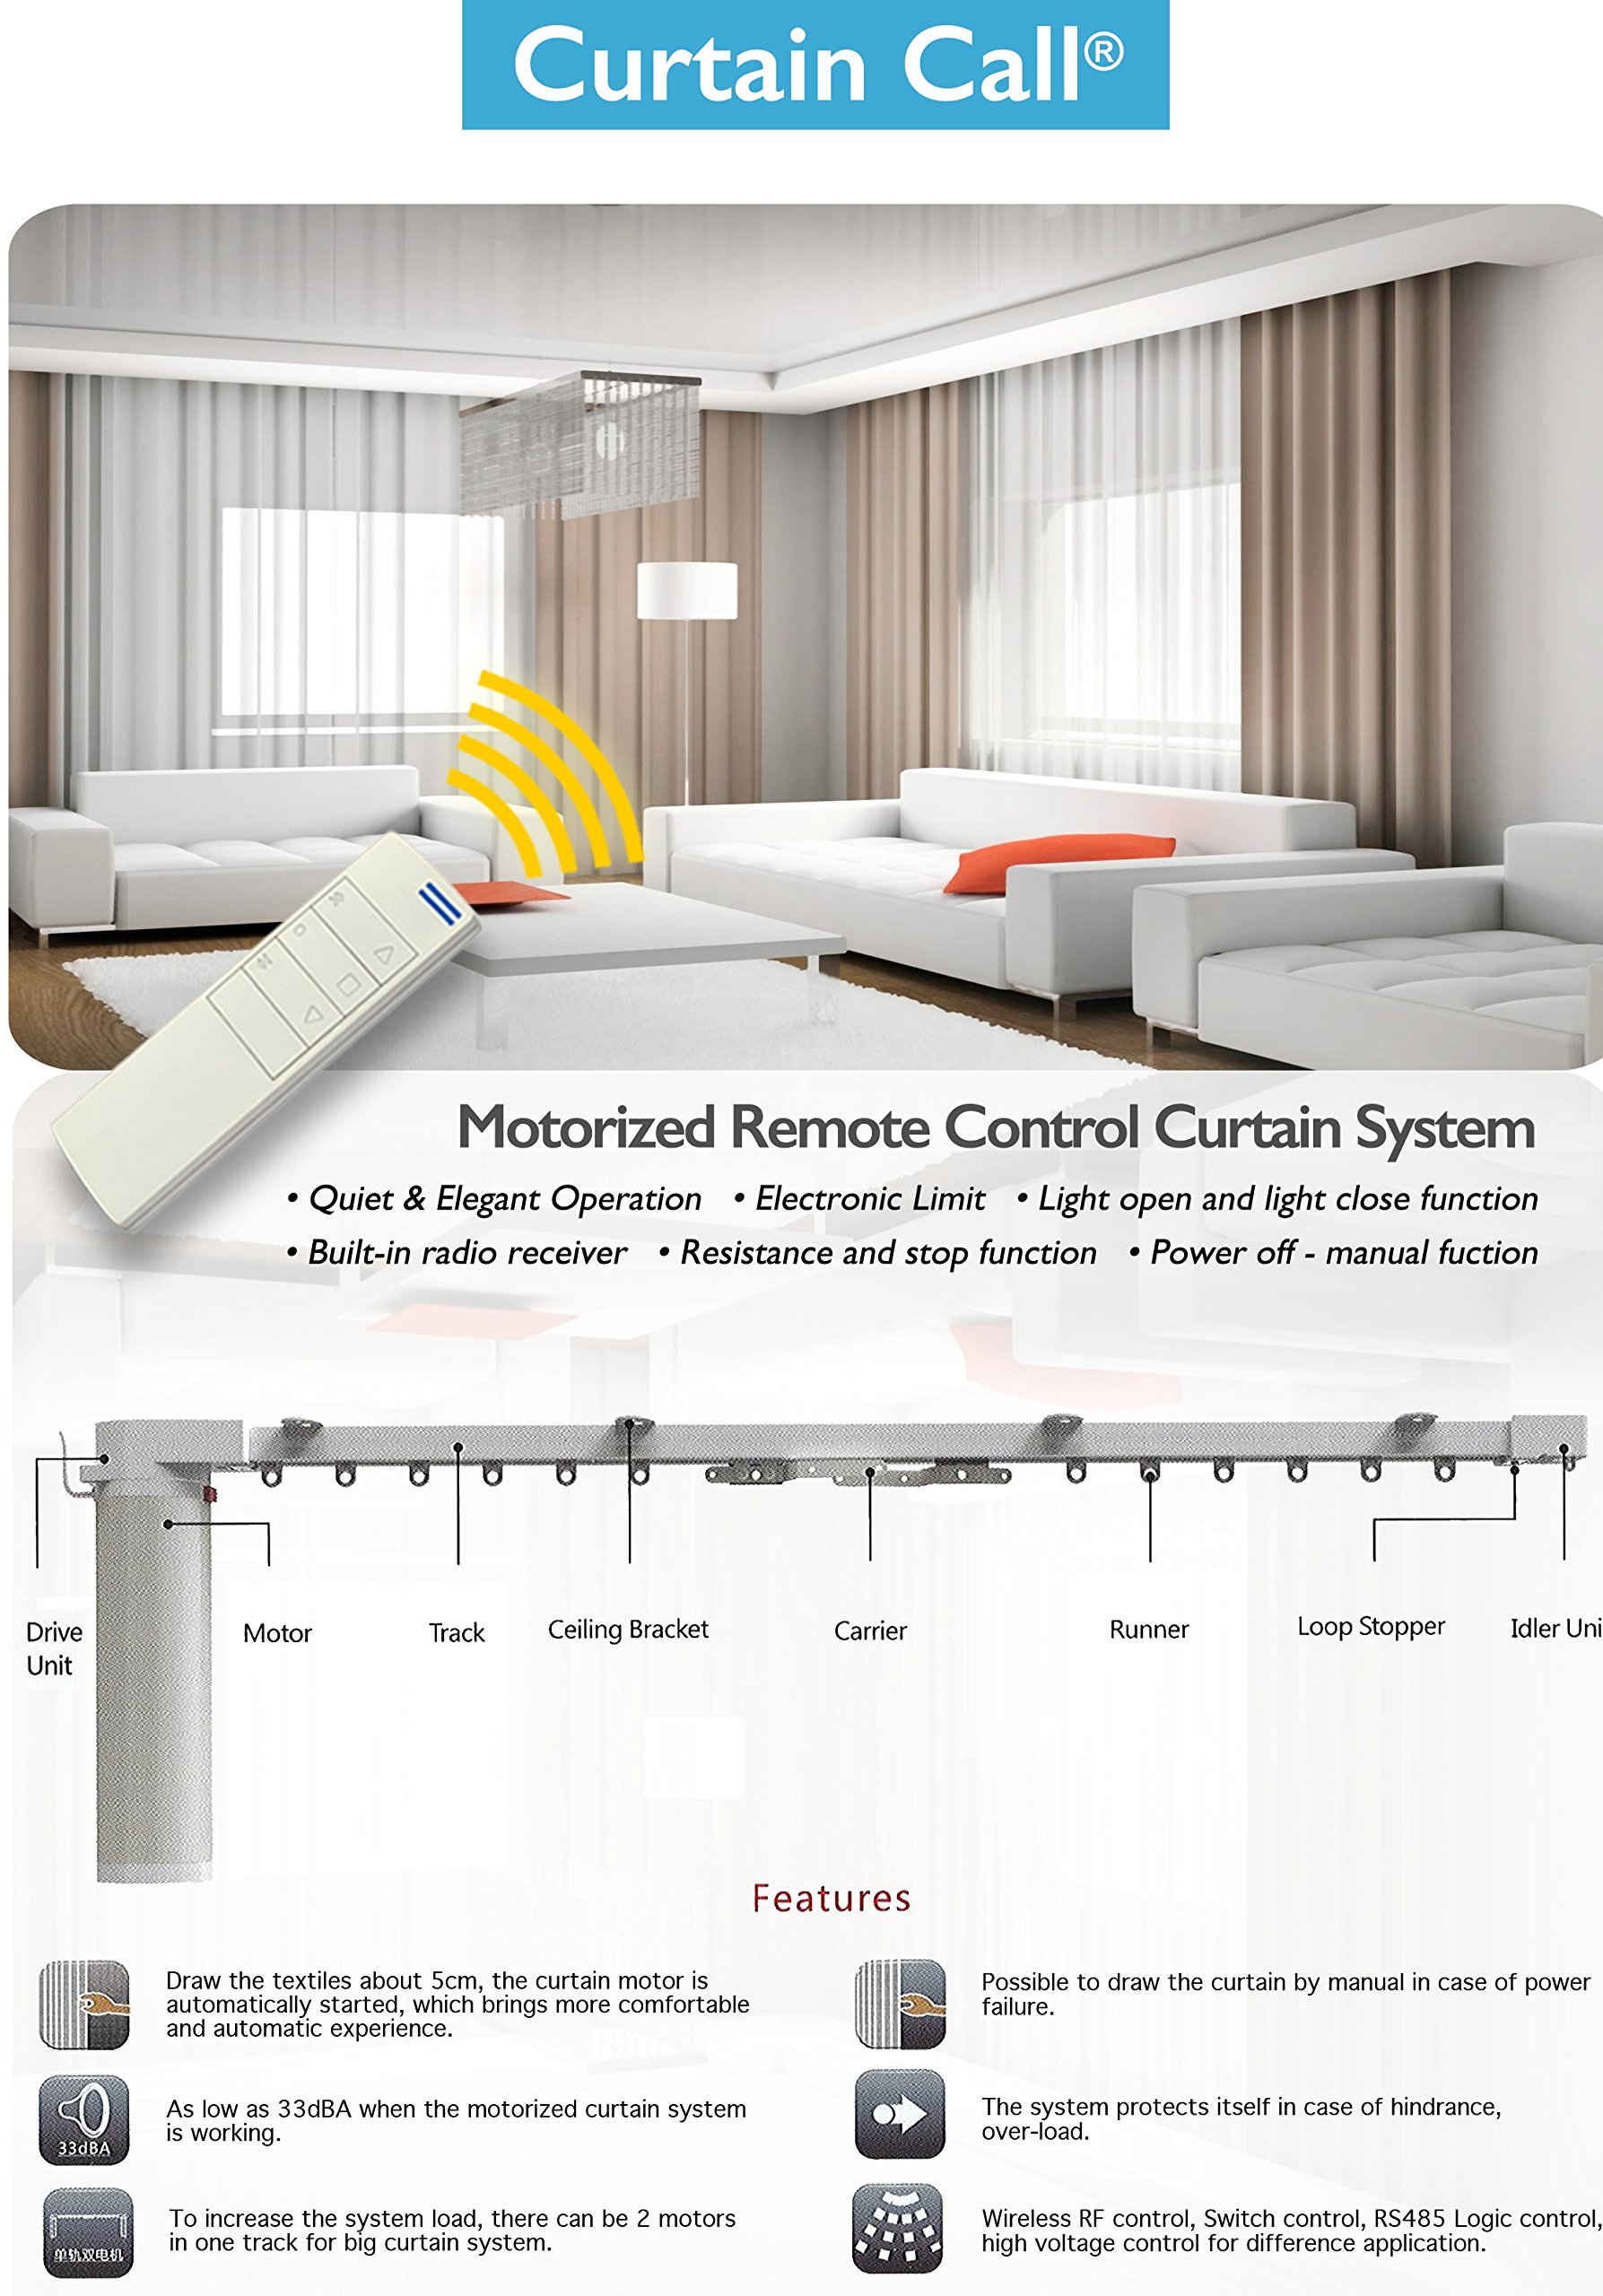 Electric Remote Controlled Drapery System W/10' Track Center Opening & Wall Mount Brackets CL-920A by Curtain Call by Curtain Call (Image #1)